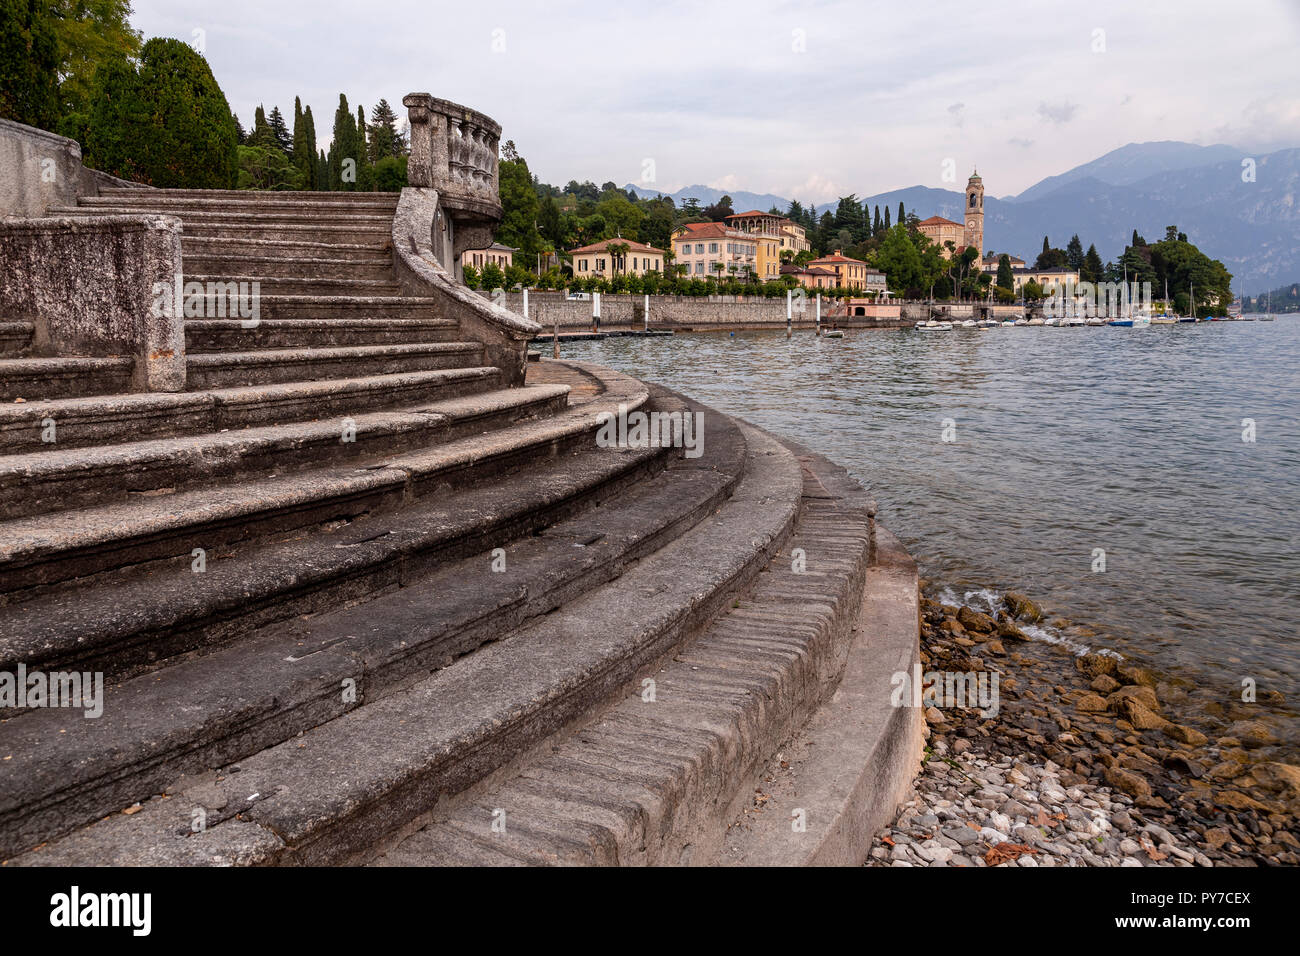 The town of Tremezzo by Lake Como in northern ItalyStock Photo